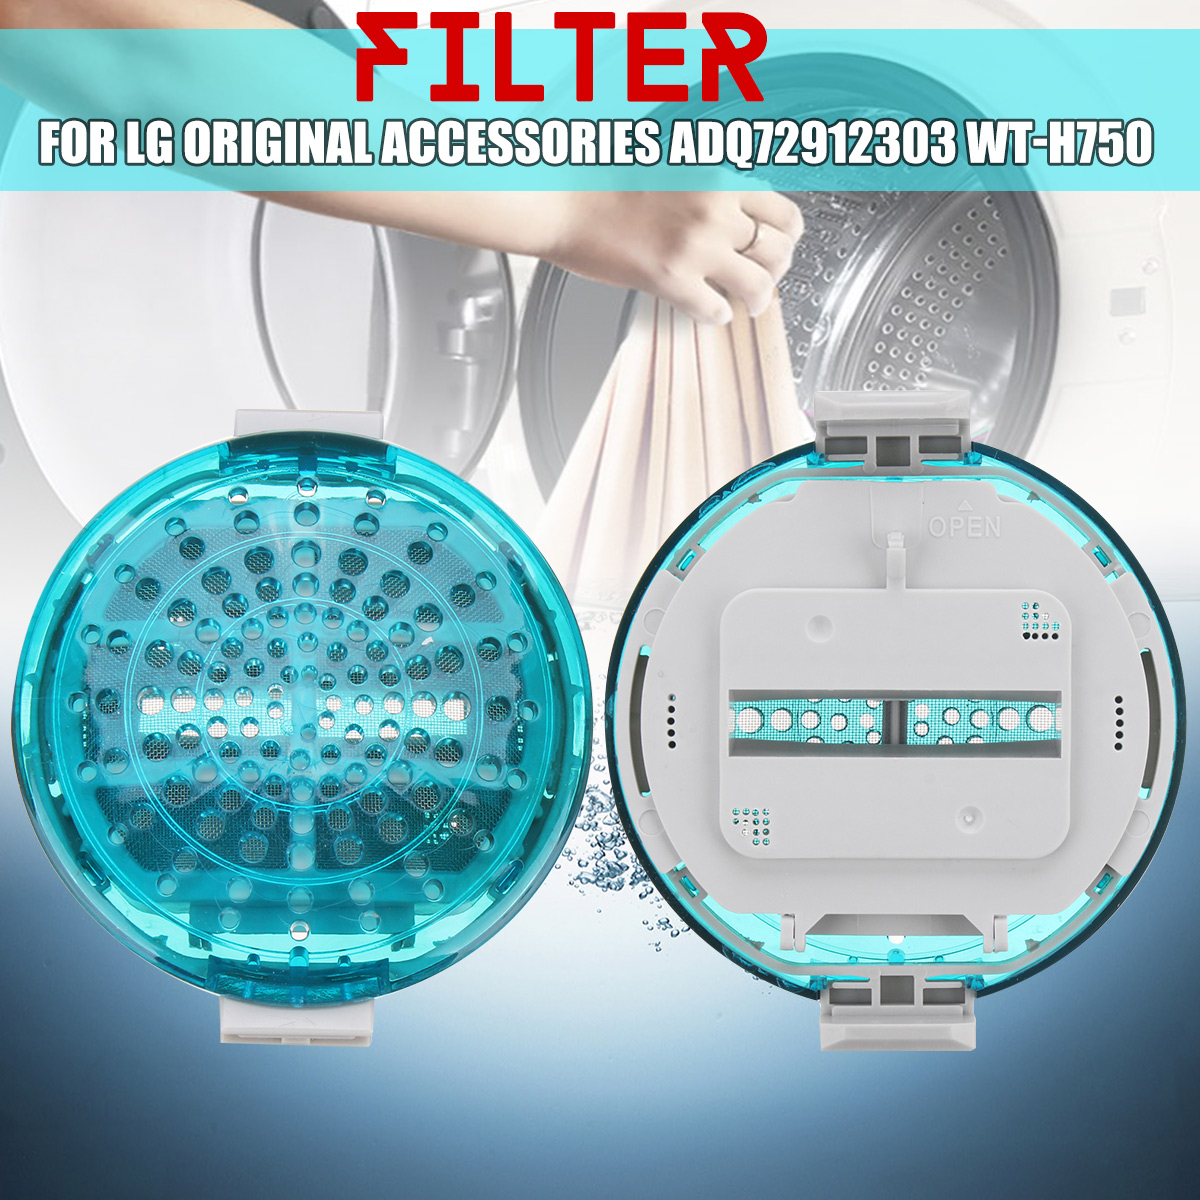 Washer Magic Filter Washing Machine Lint Filter For LG Accessories ADQ72912303 WT-H750